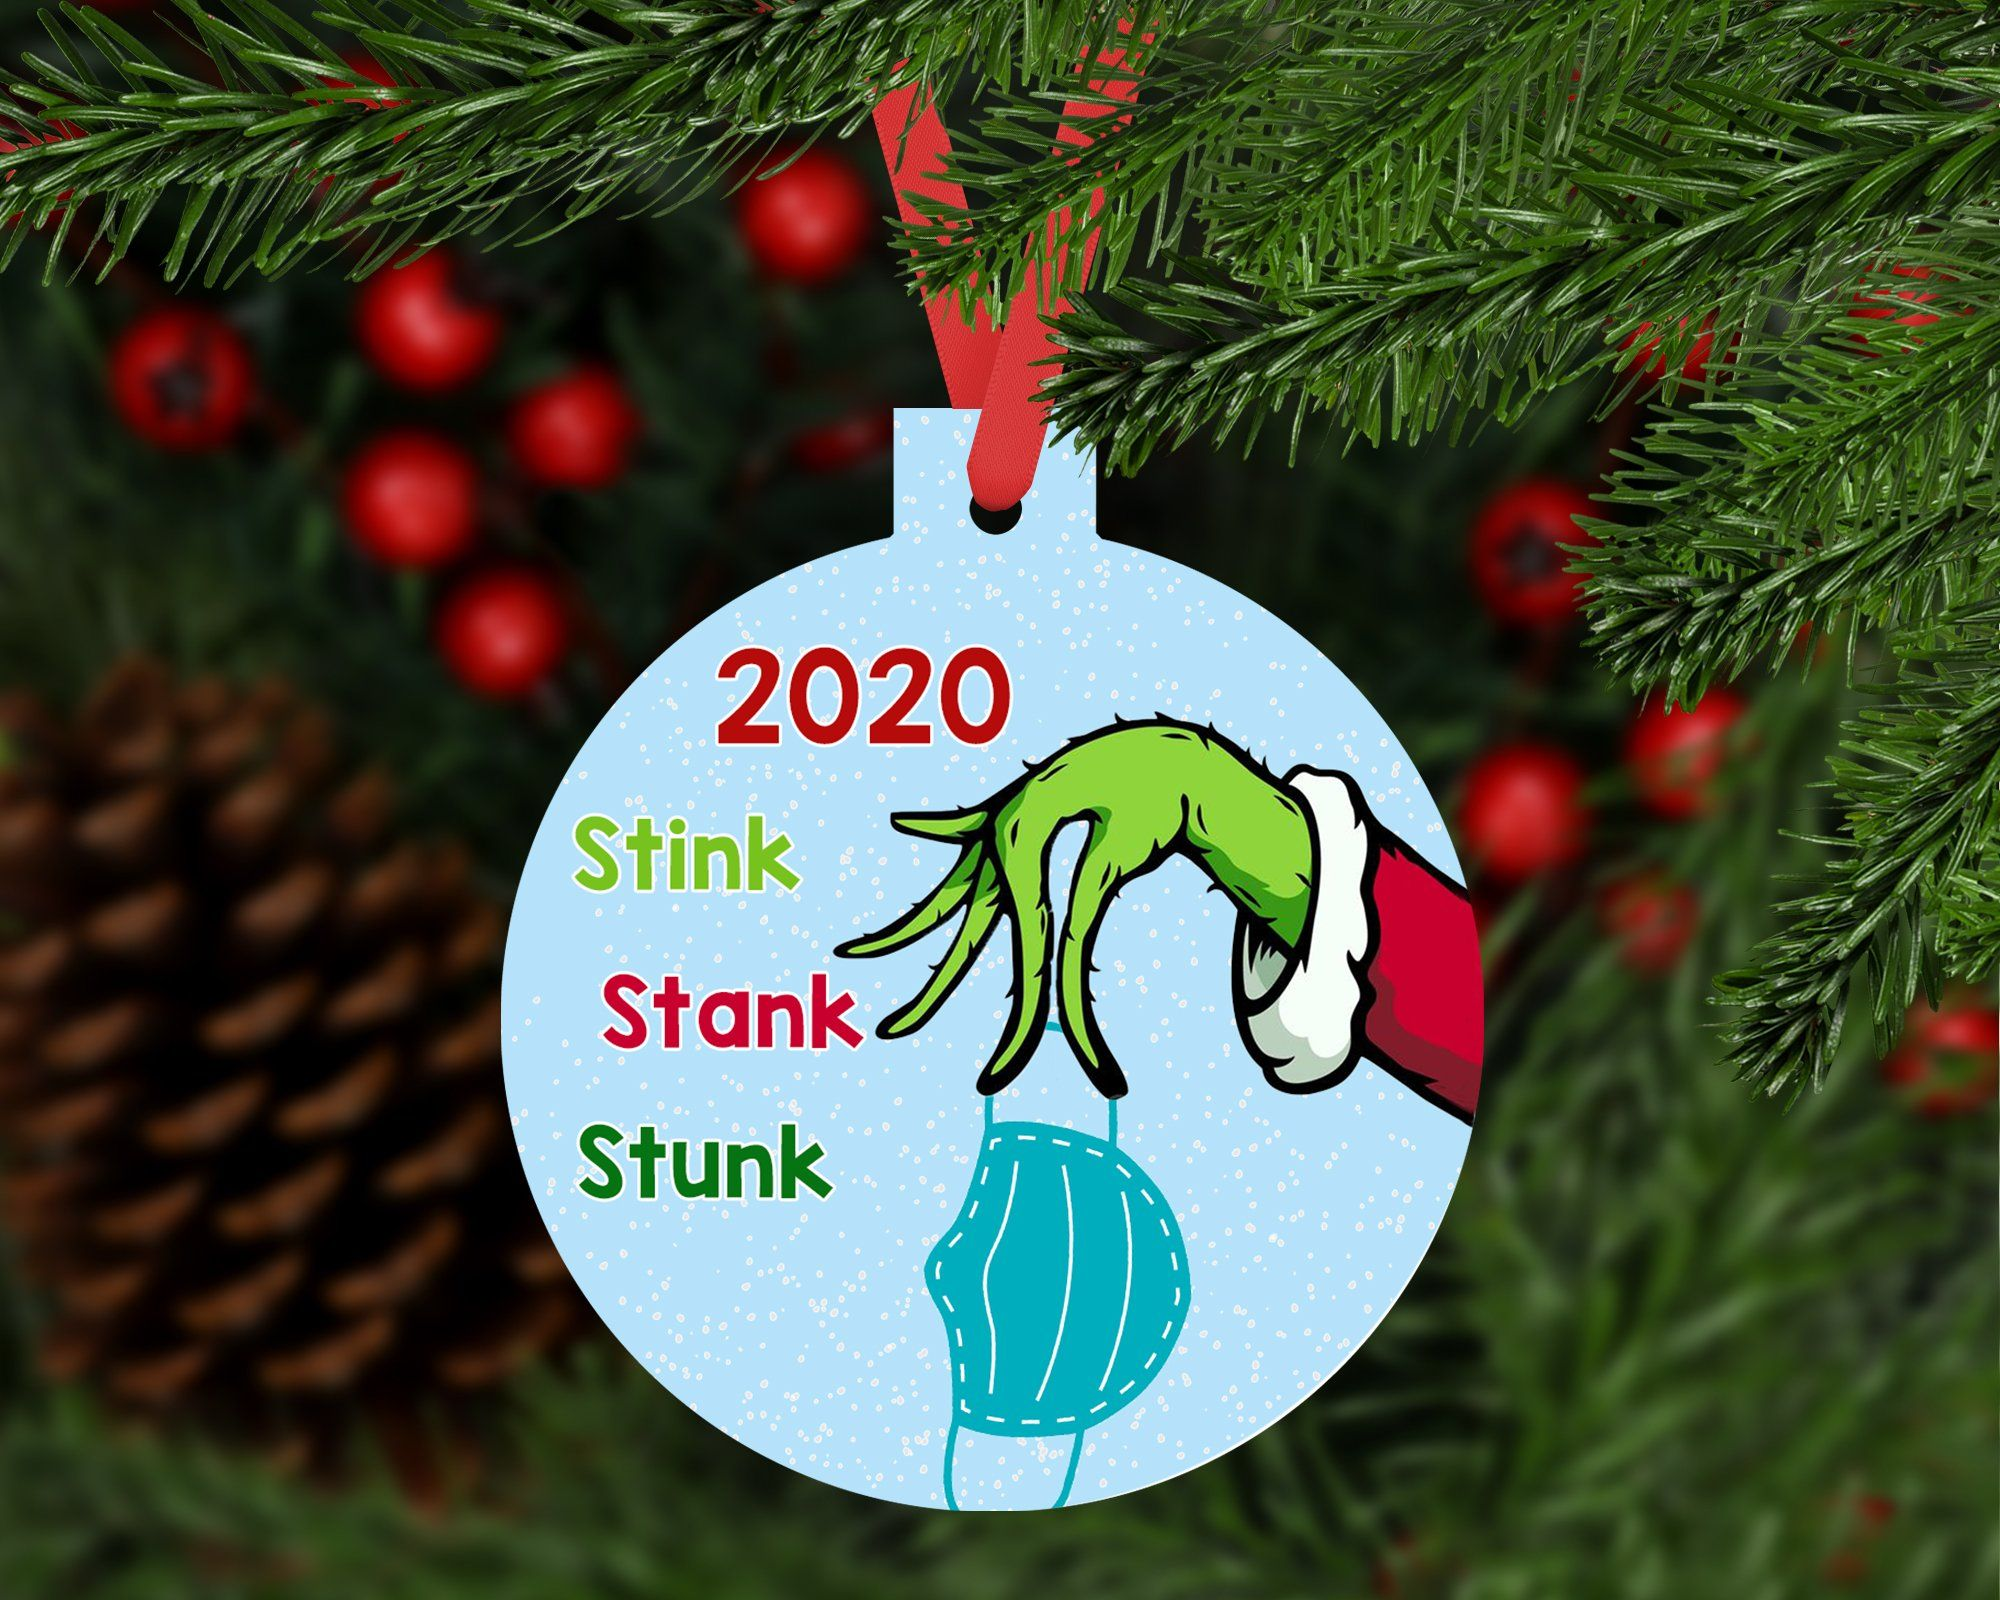 Grinch 2020 Ornament Round Design Diy Christmas Cards Diy Xmas Gifts Christmas Ornaments